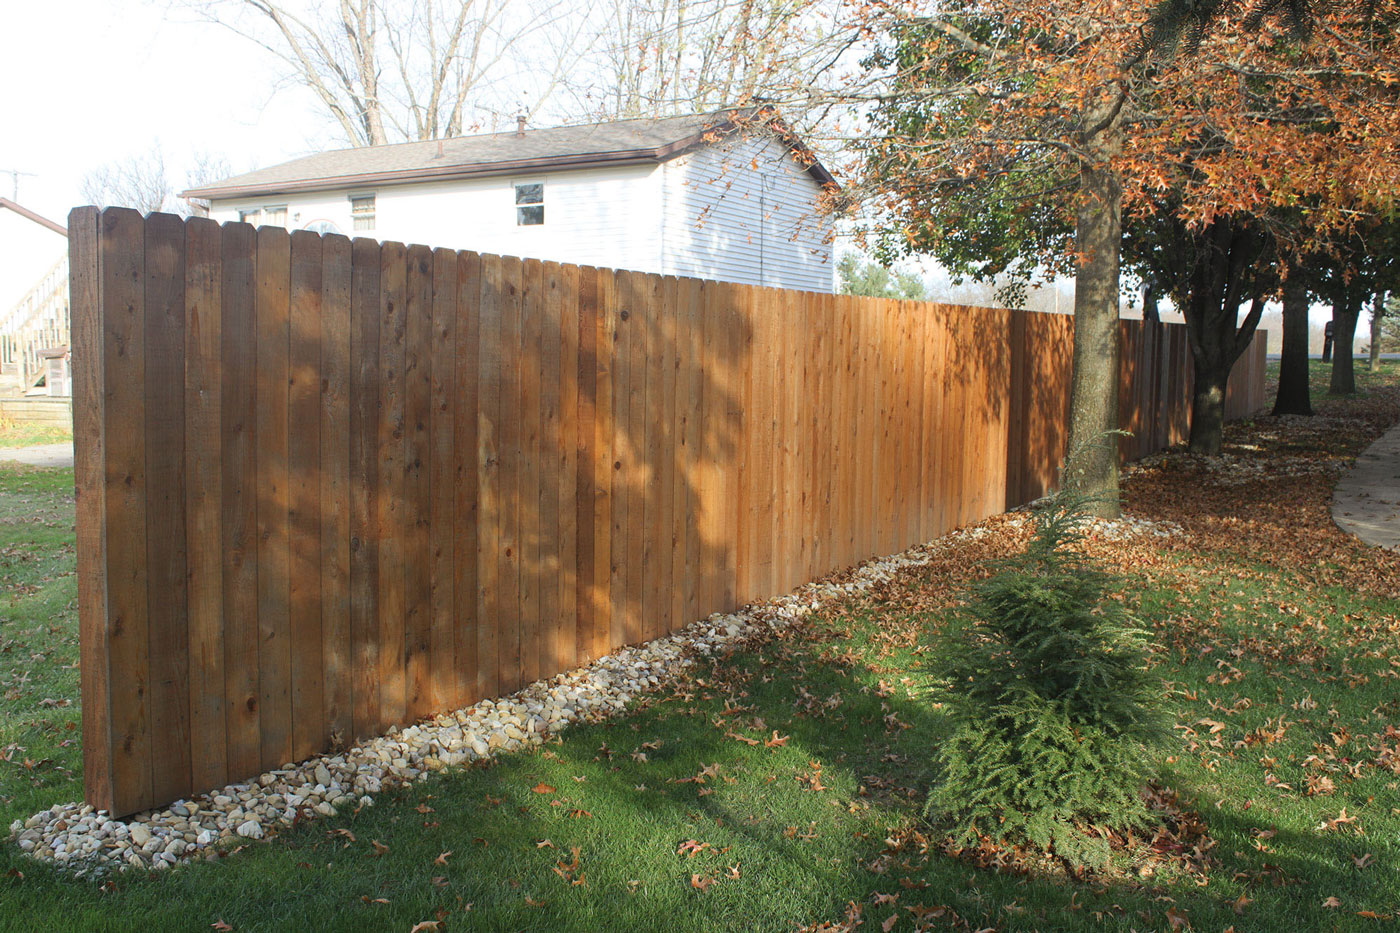 Decorativeprivacy fence installation home property boundary fence dogs kids yellow pine solid board fence